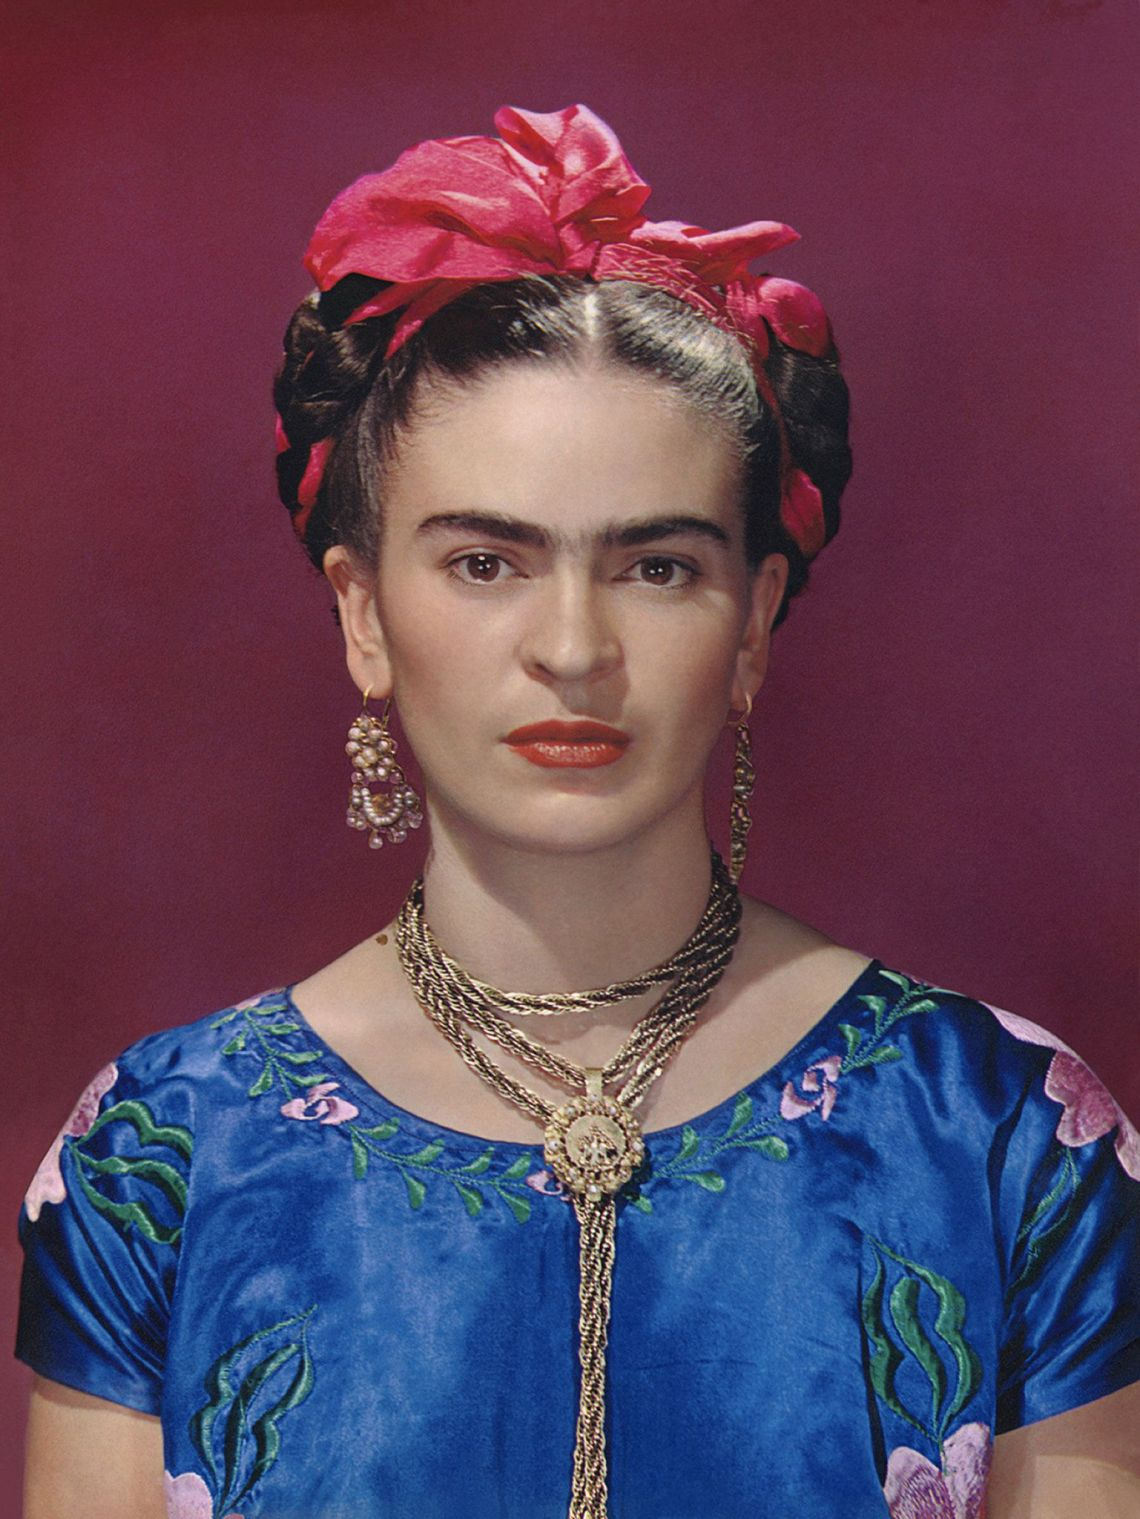 Frida Kahlo in blue satin blouse, 1939.